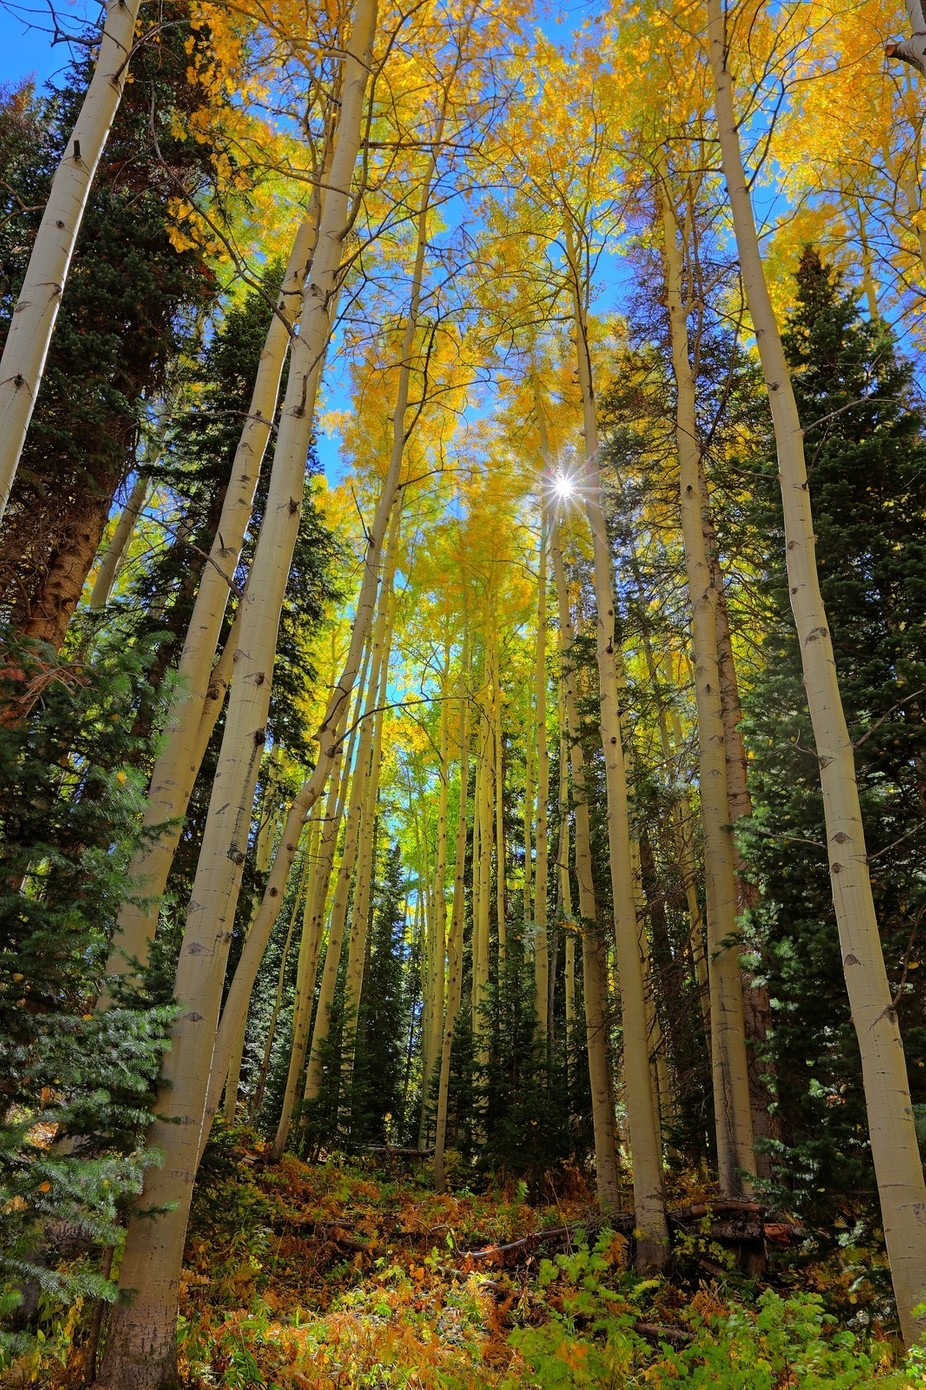 ASPEN GOLD, FALL 2016 by wolfinthewoods - Unforgettable Landscapes Photo Contest by Zenfolio